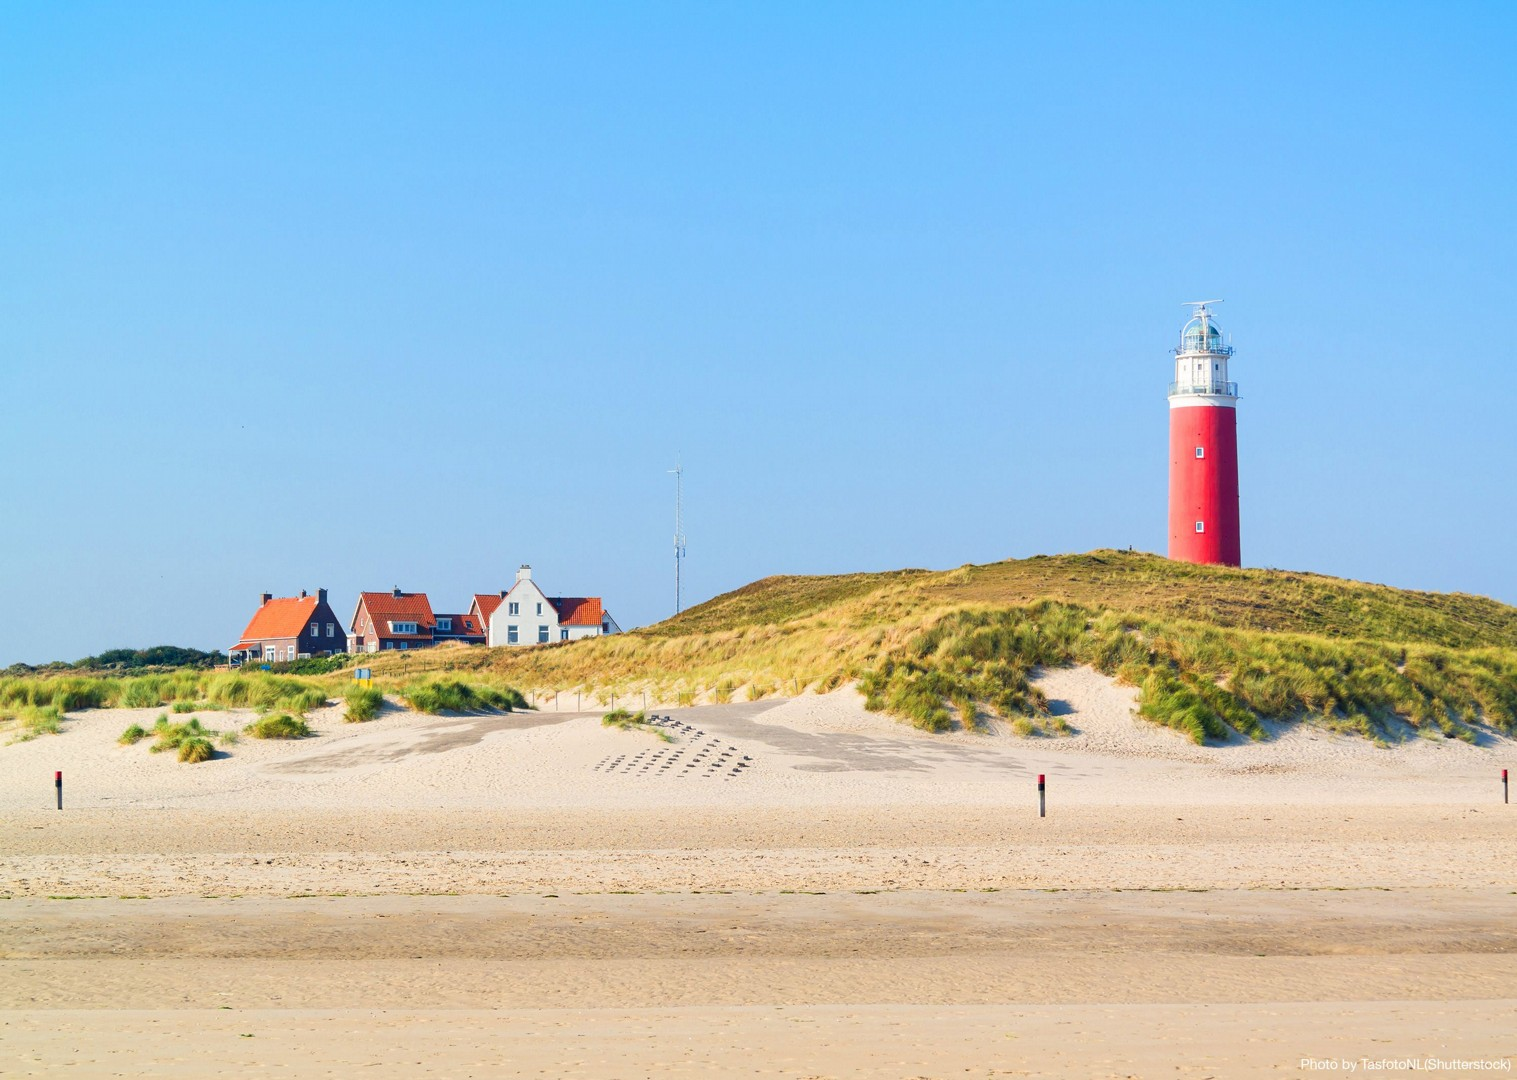 windmills-and-golden-beaches-bike-and-barge-holiday-in-holland.jpg - Holland - Windmills and Golden Beaches - Bike and Barge Holiday - Family Cycling